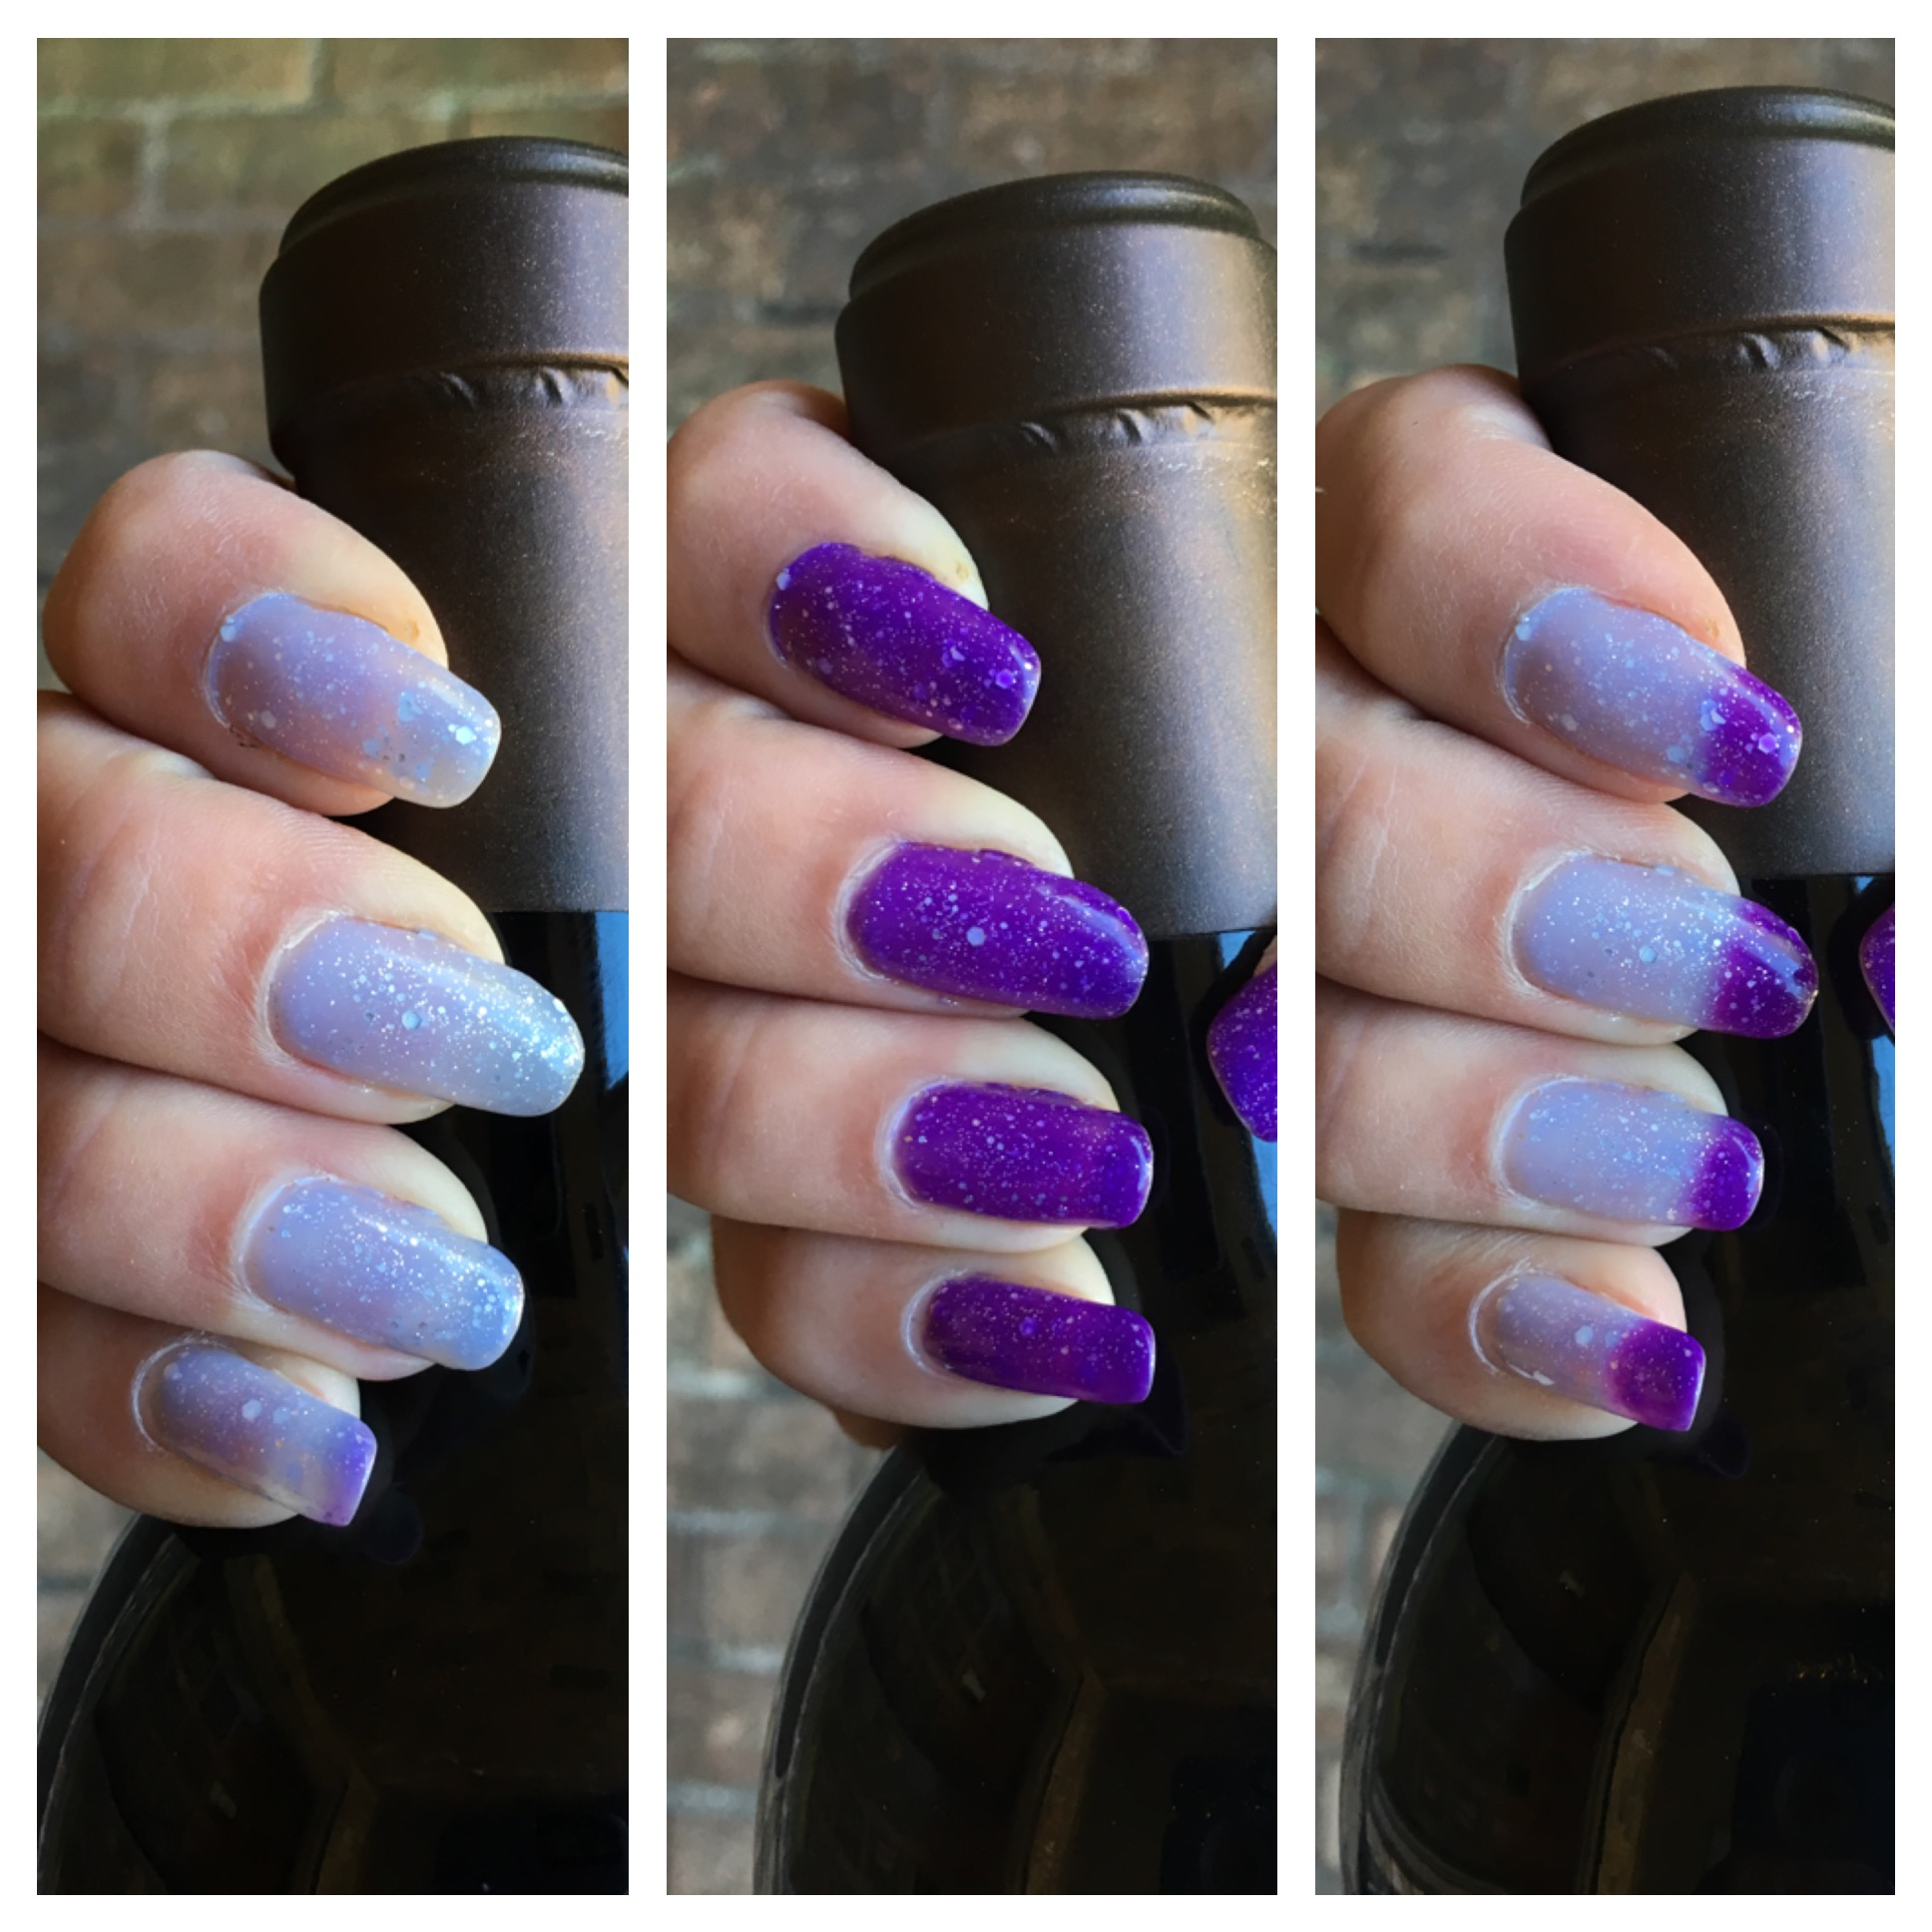 Do it yourself salon gel nails at home how to save big on salon gel nails at home solutioingenieria Images